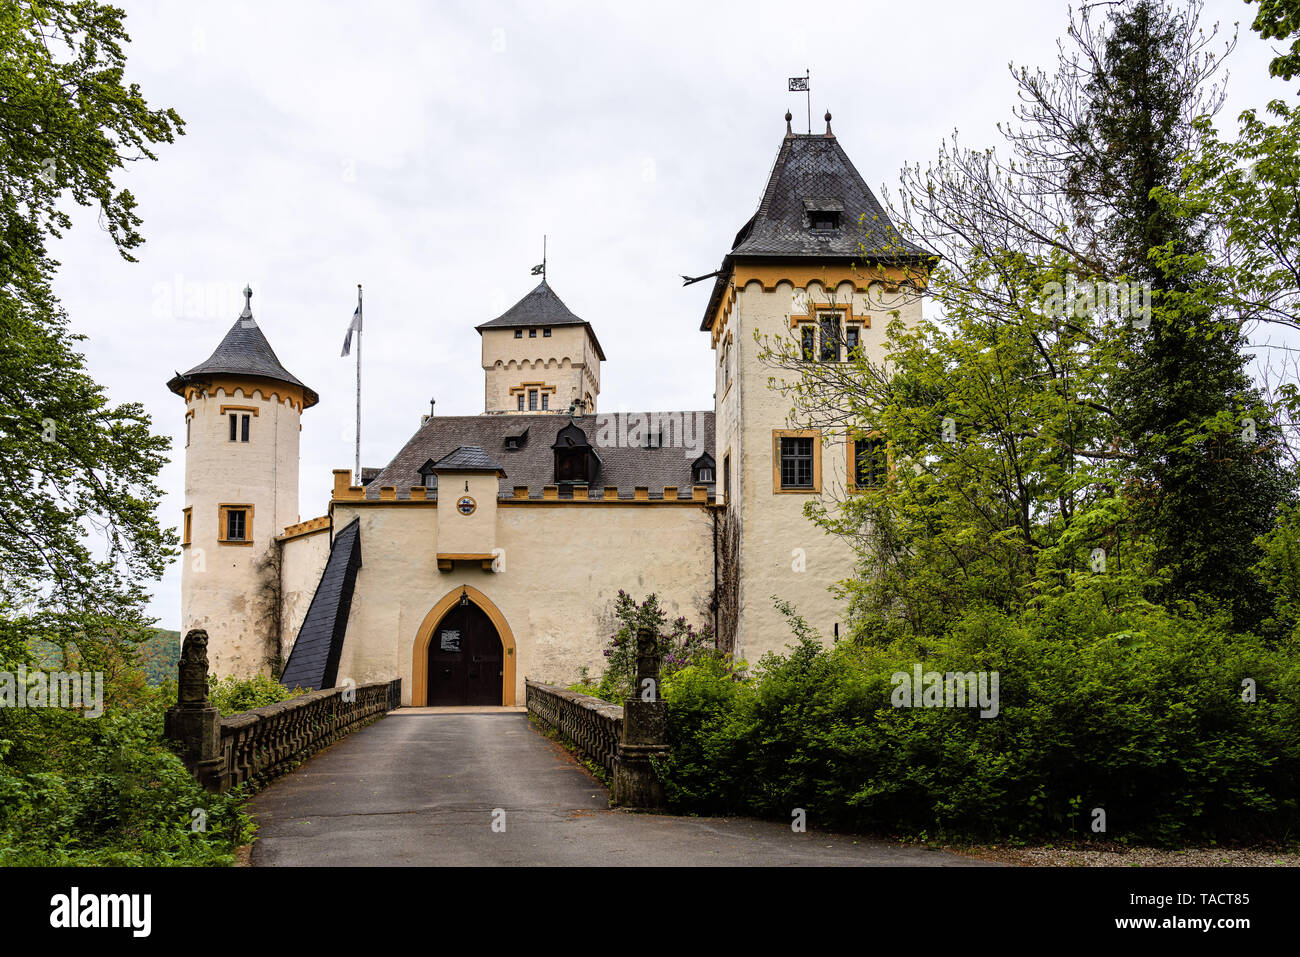 Schloss Greifenstein is a castle in Bavaria, Germany. - Stock Image